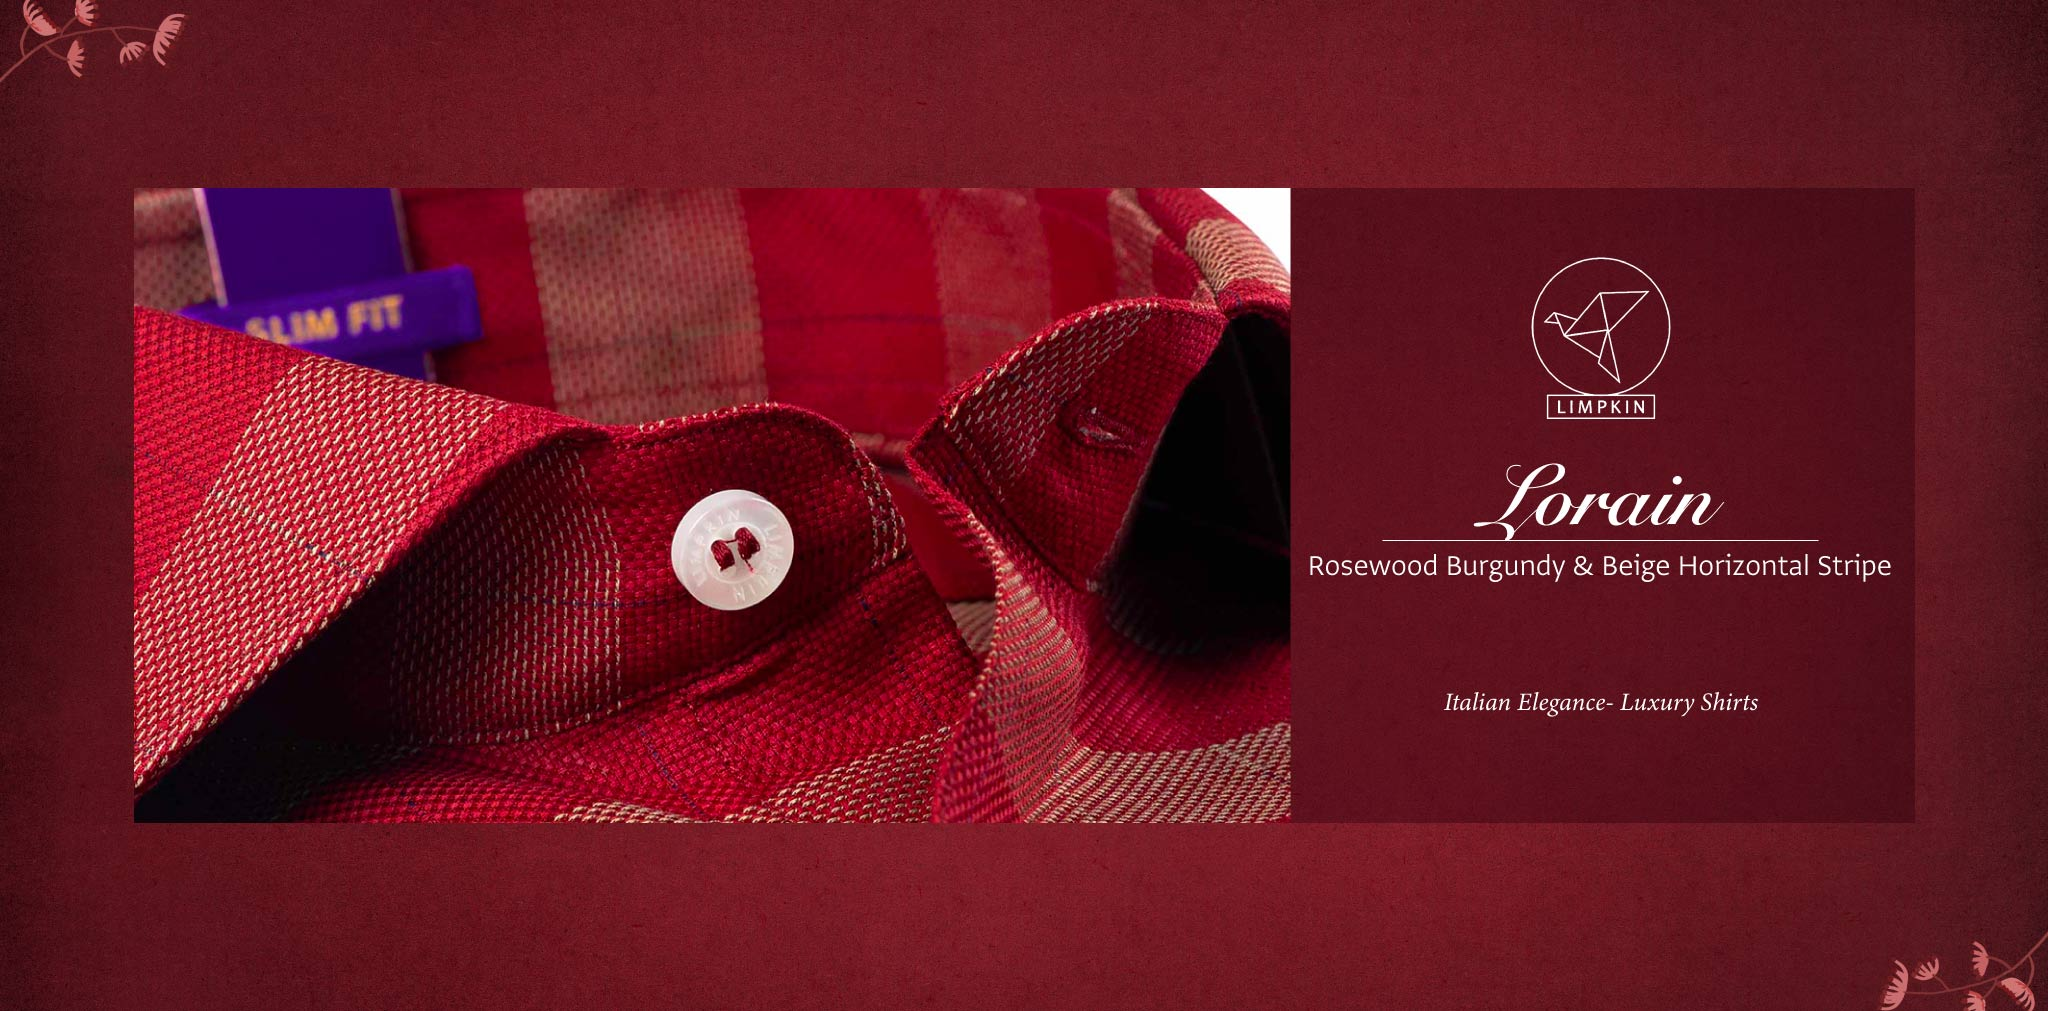 Lorain- Rosewood Burgundy & Beige Horizontal Stripe- 2 Ply Pure Egyptian Giza Cotton- Delivery from 19th April - Banner